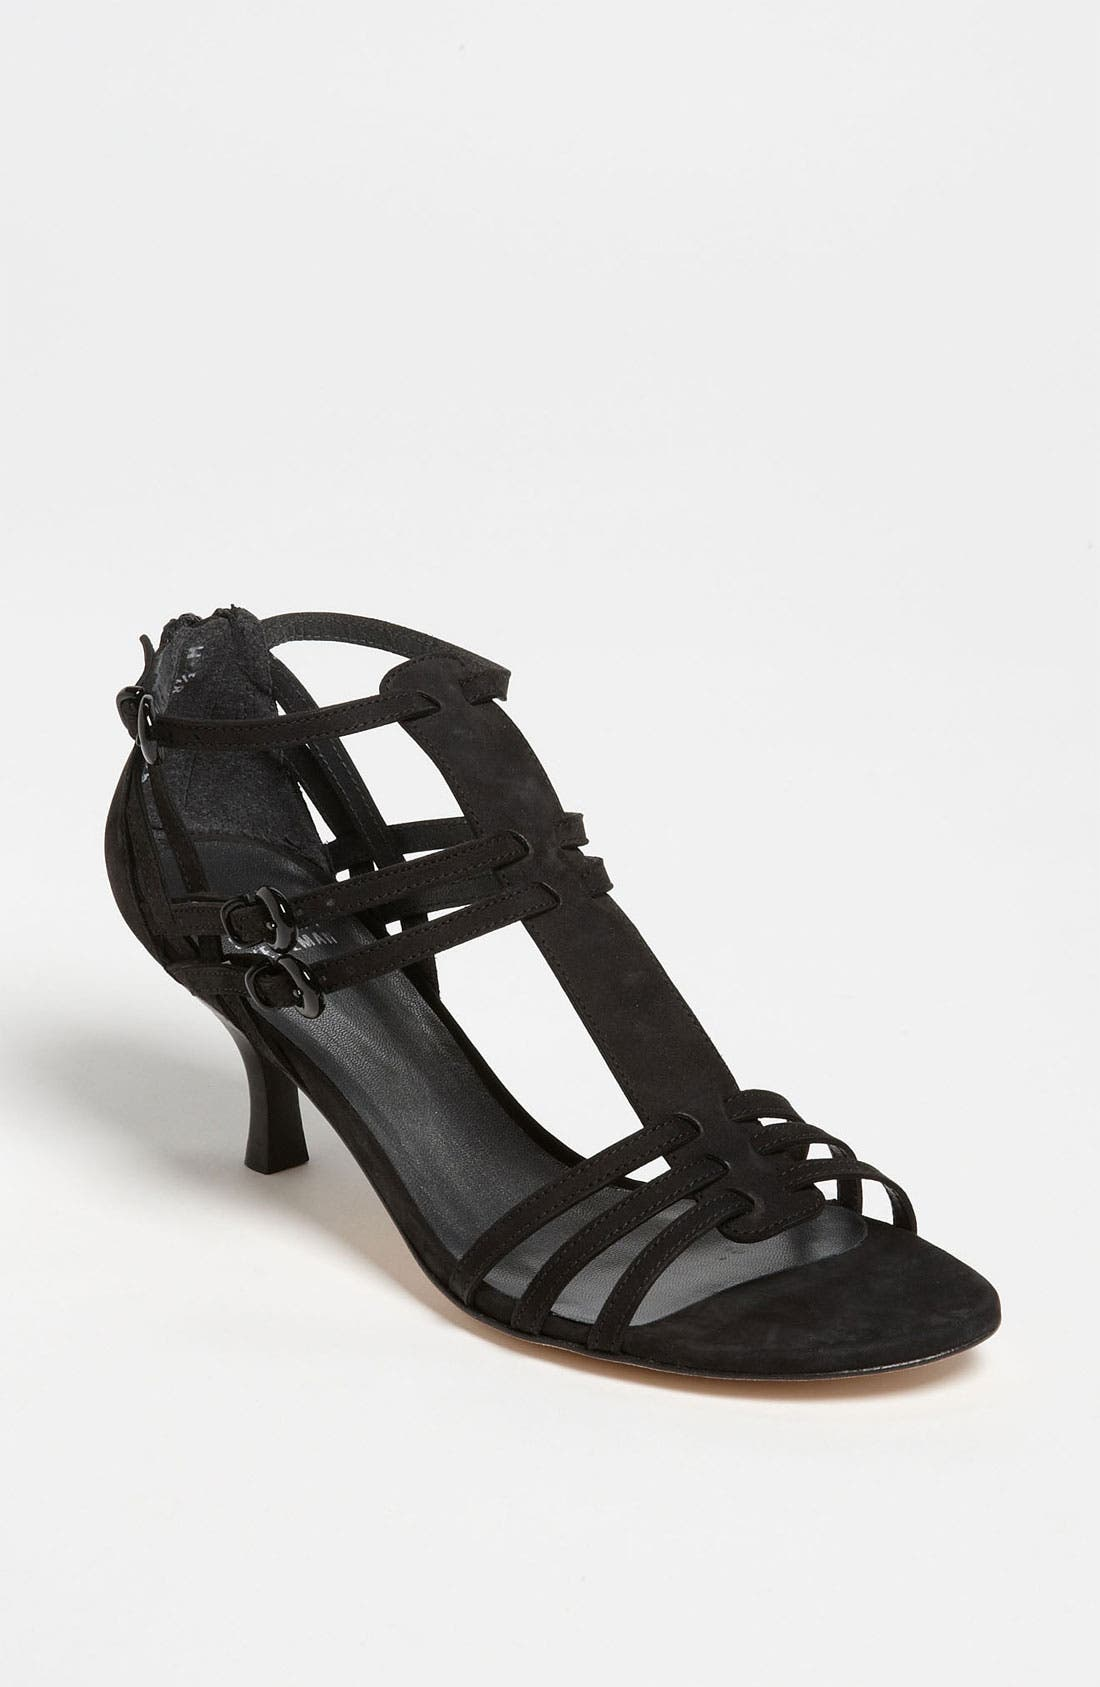 Alternate Image 1 Selected - Stuart Weitzman 'Hurrachtee' Sandal